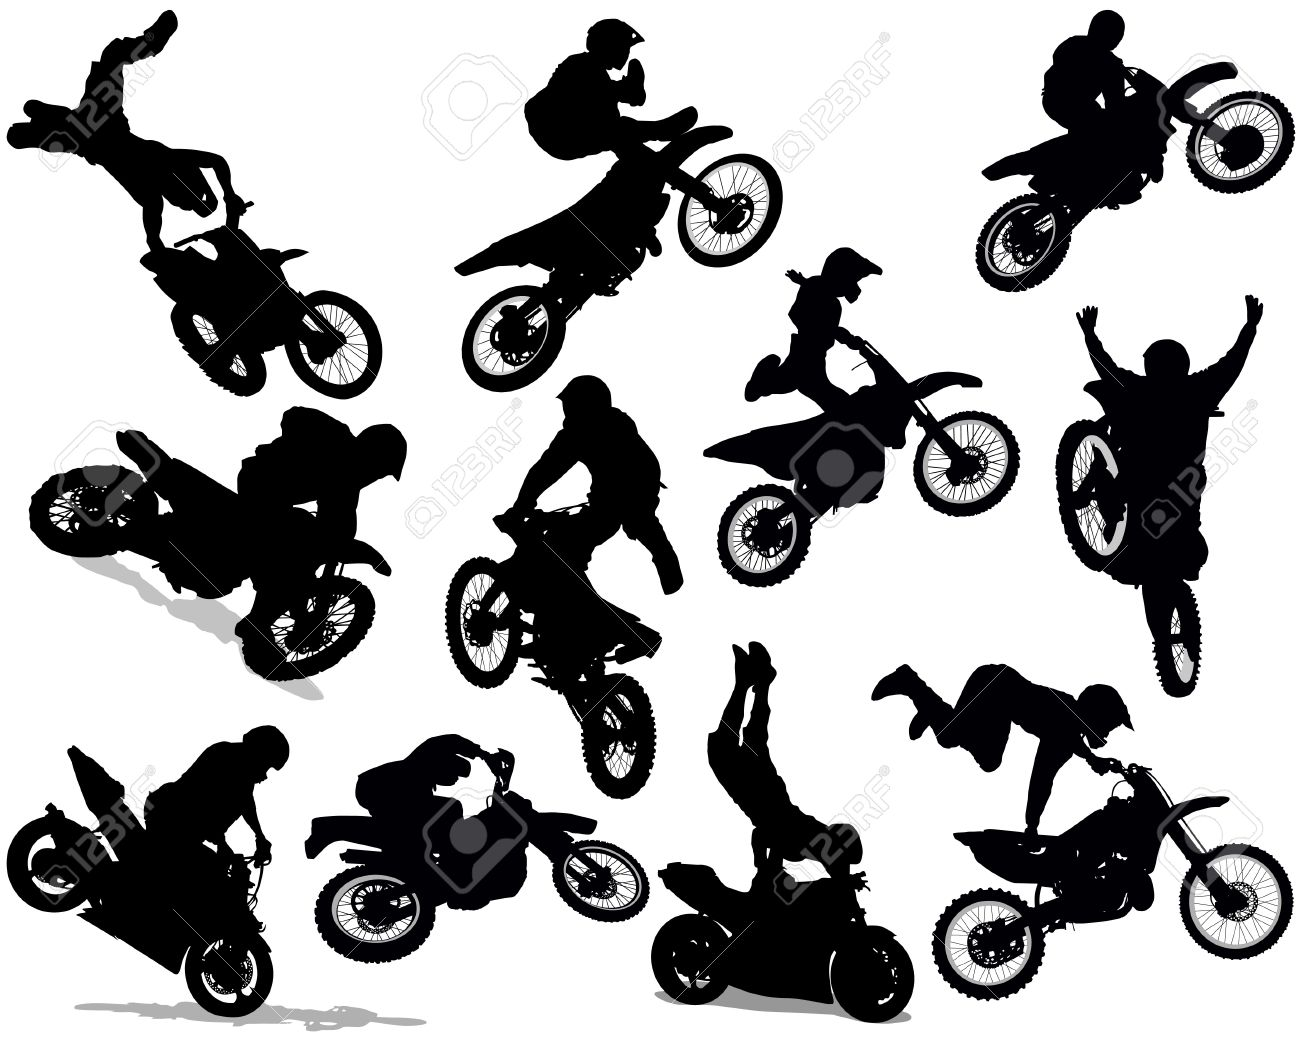 Moto clipart #8, Download drawings